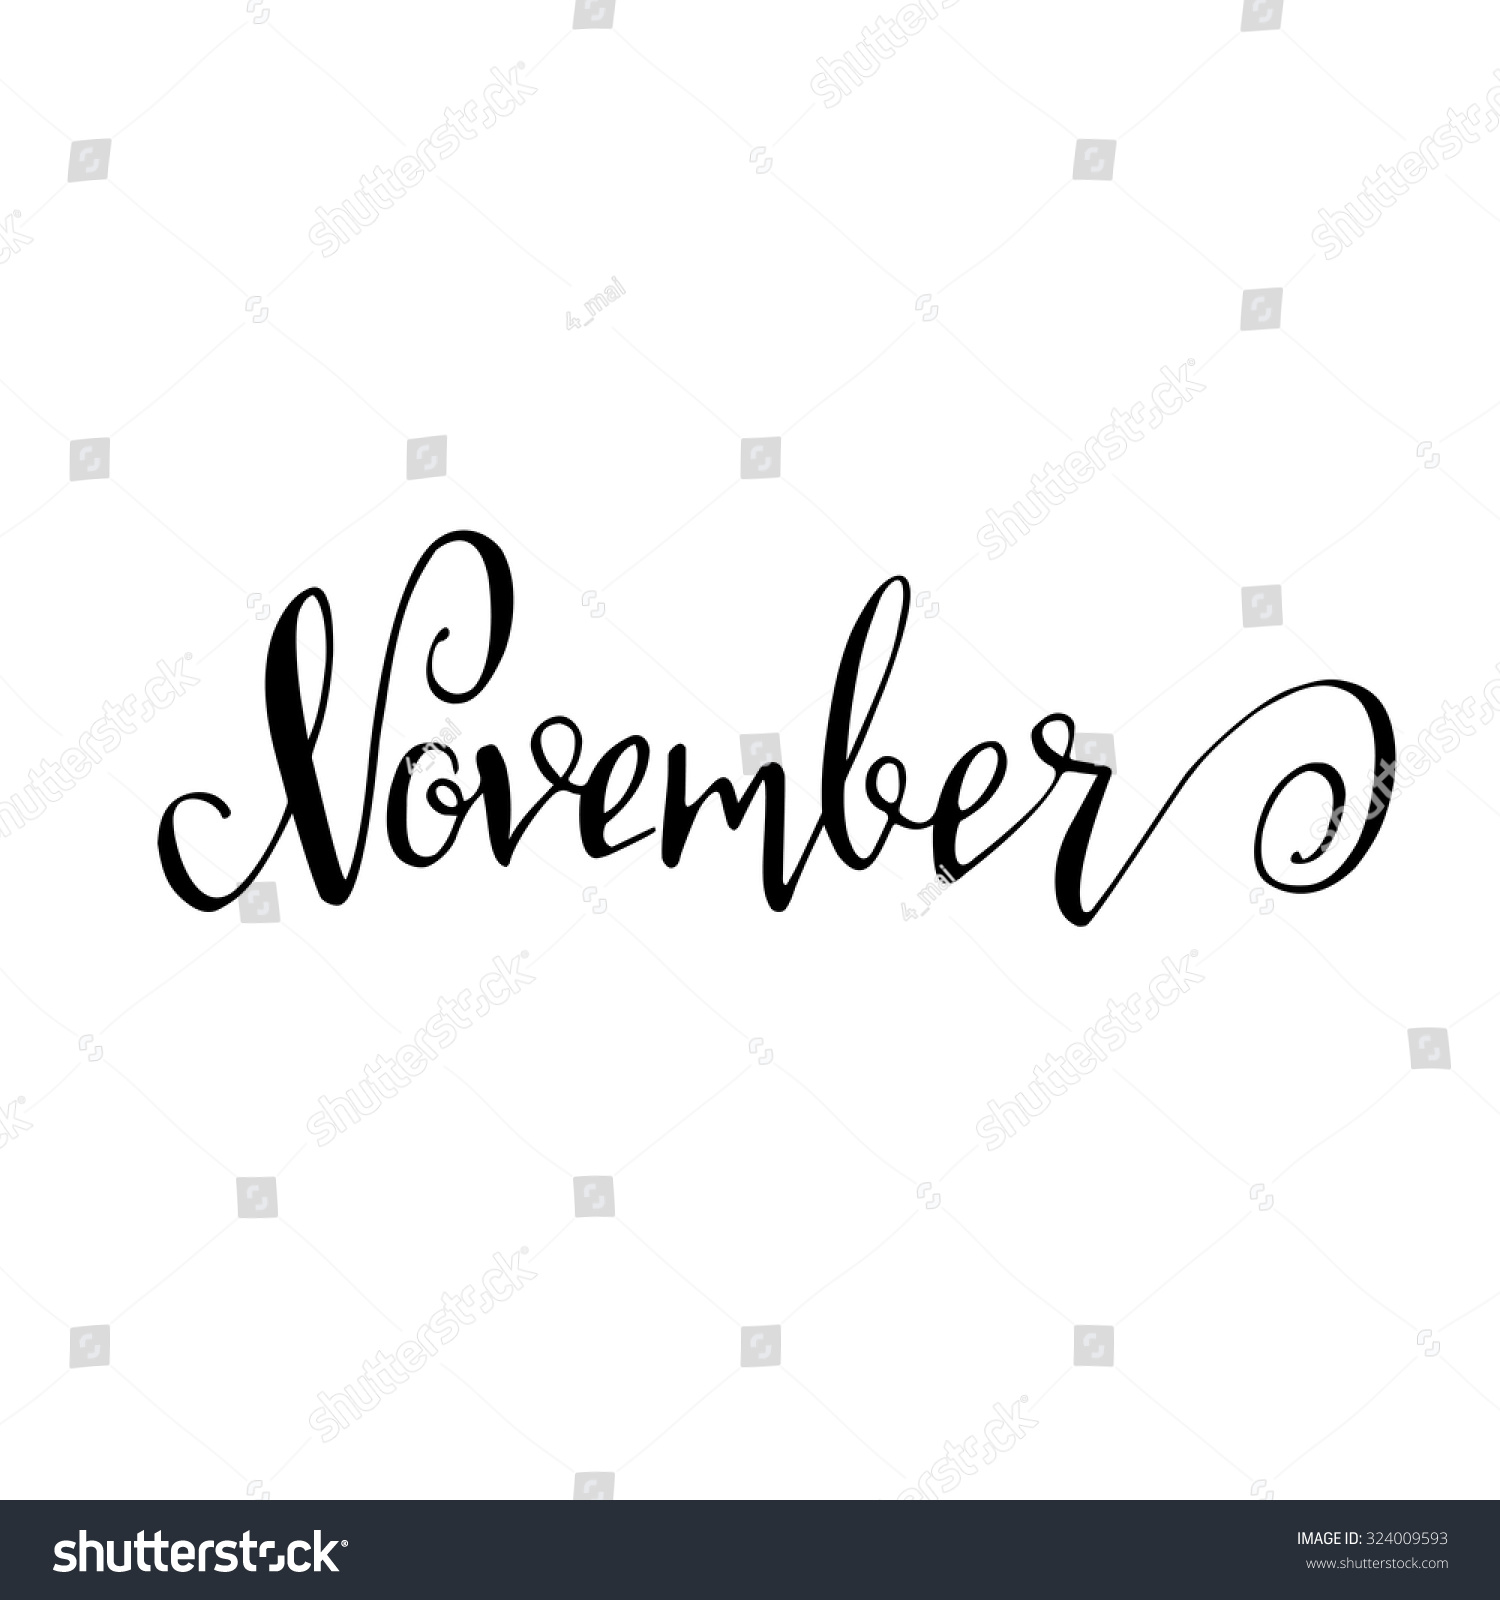 November month lettering calligraphy sign isolated stock